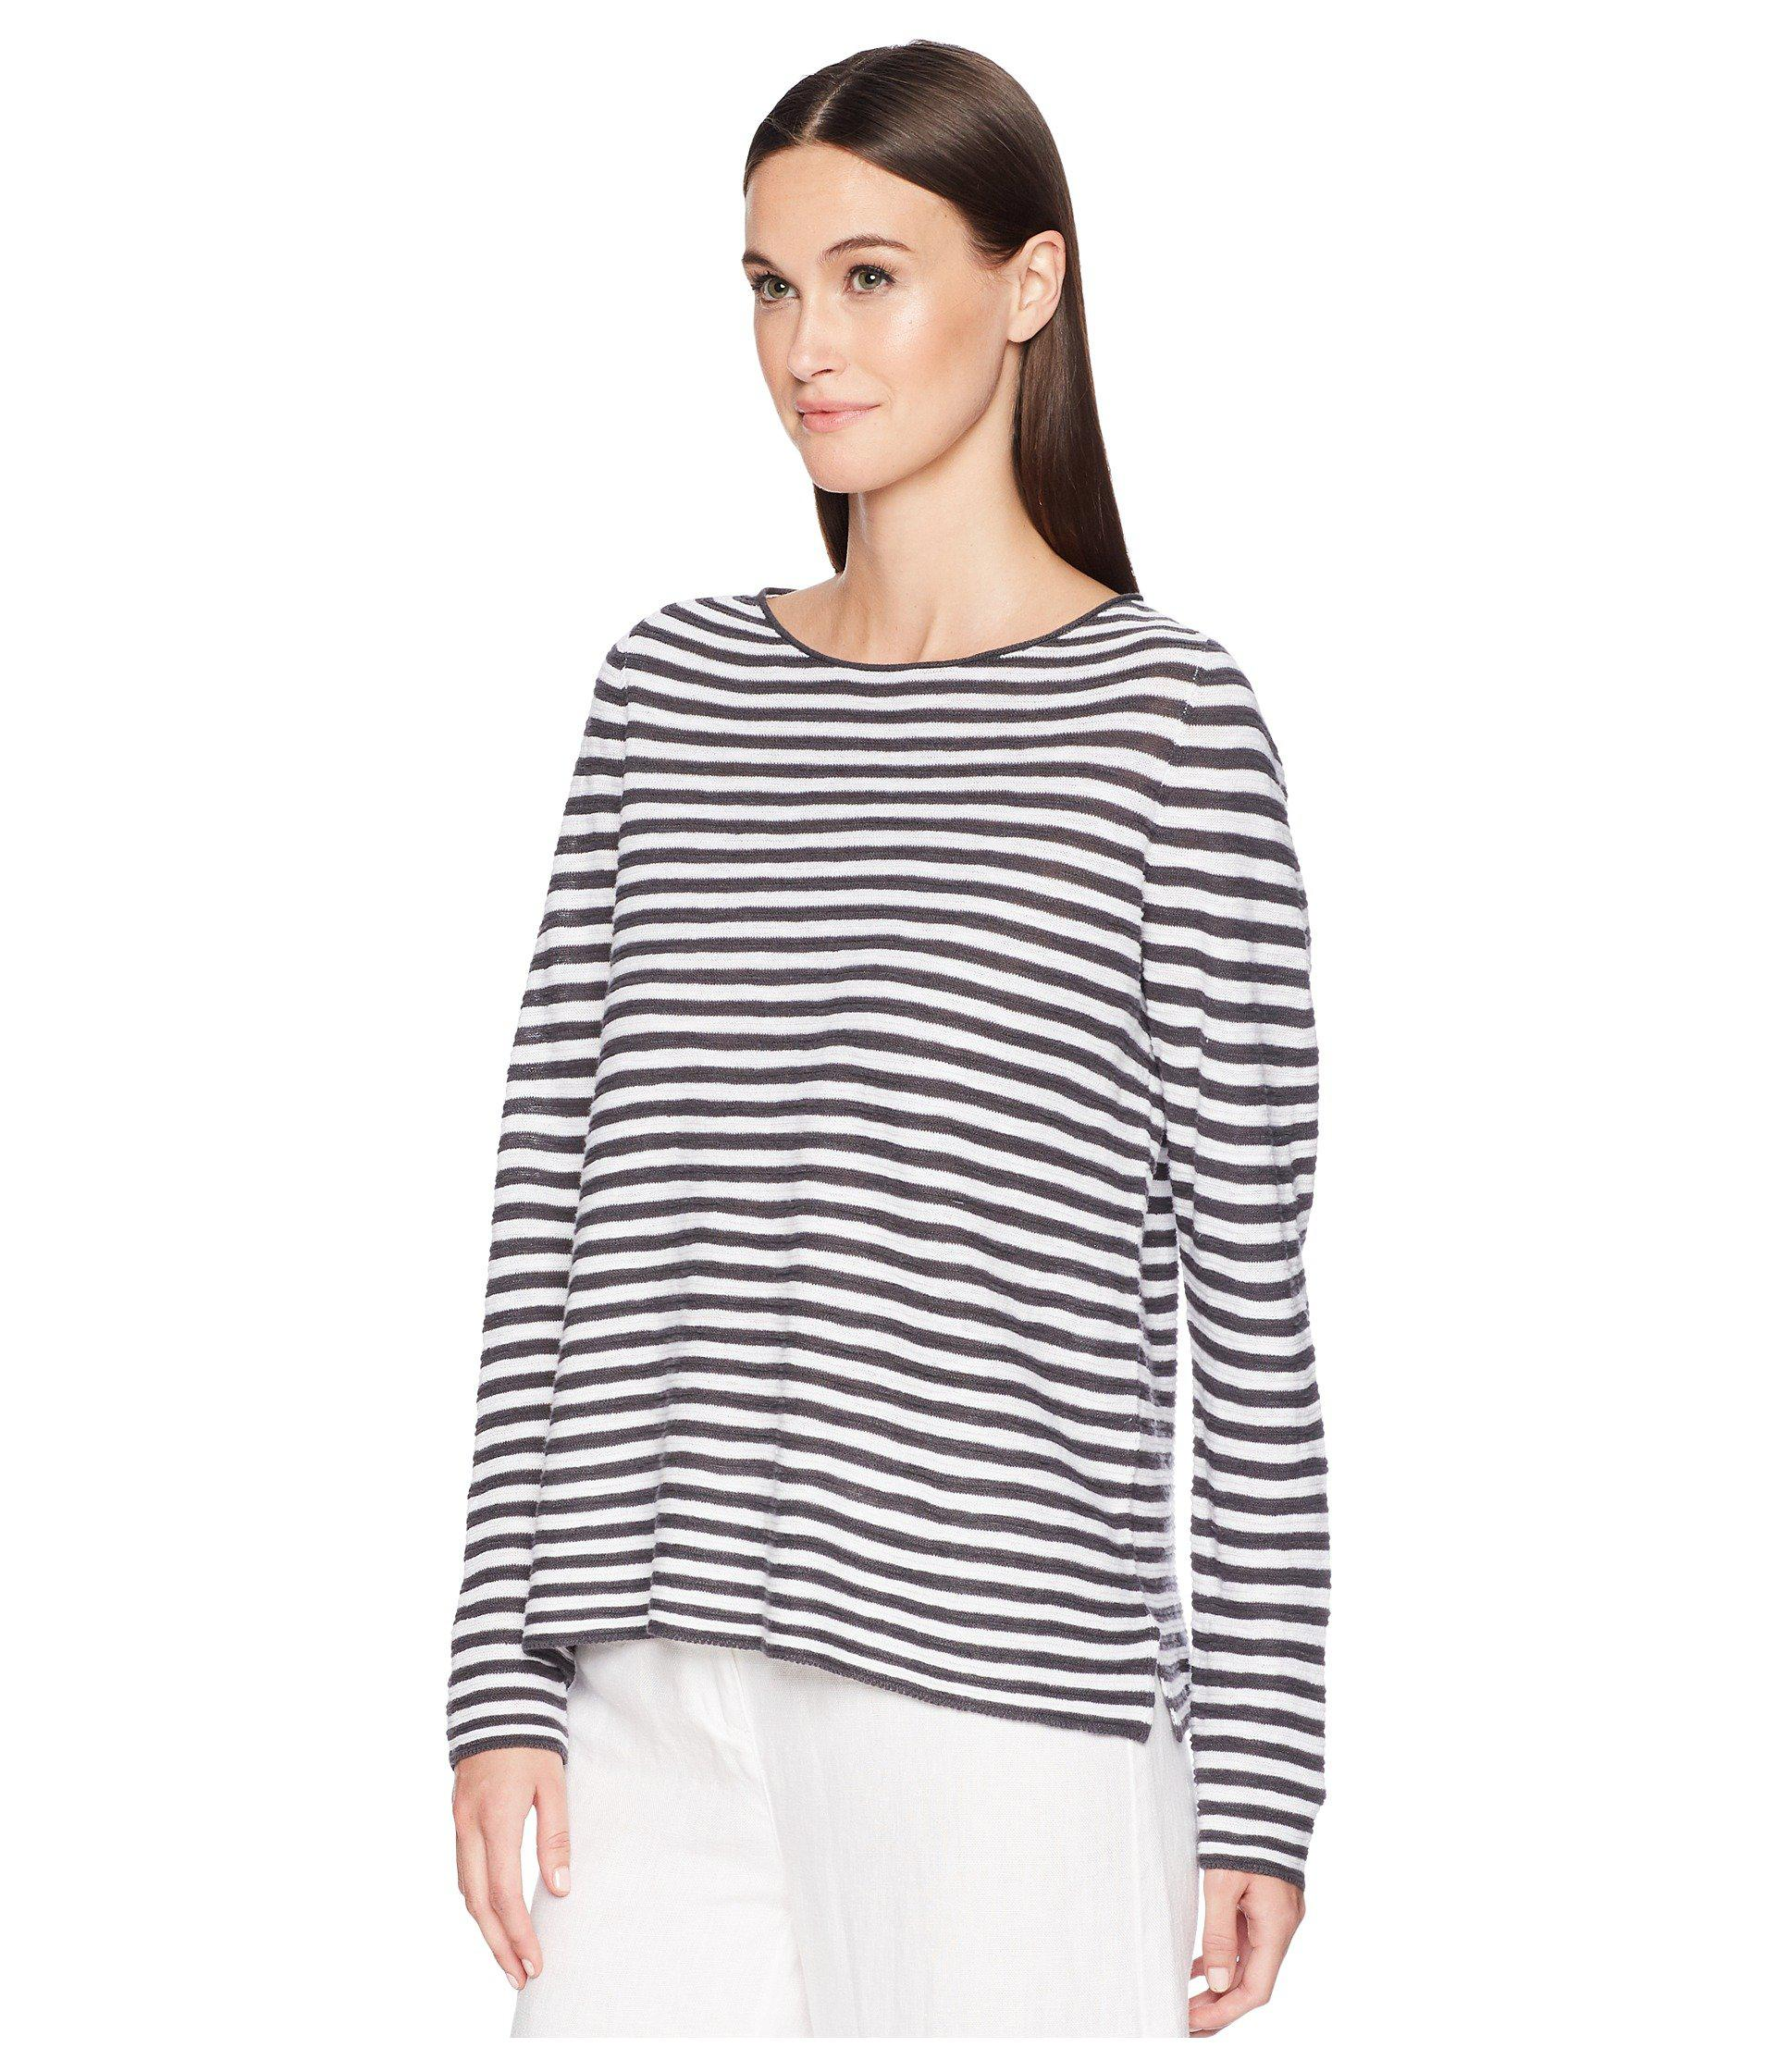 f41122caa0 Lyst - Eileen Fisher Organic Linen Cotton Stripe Top - Save 49%